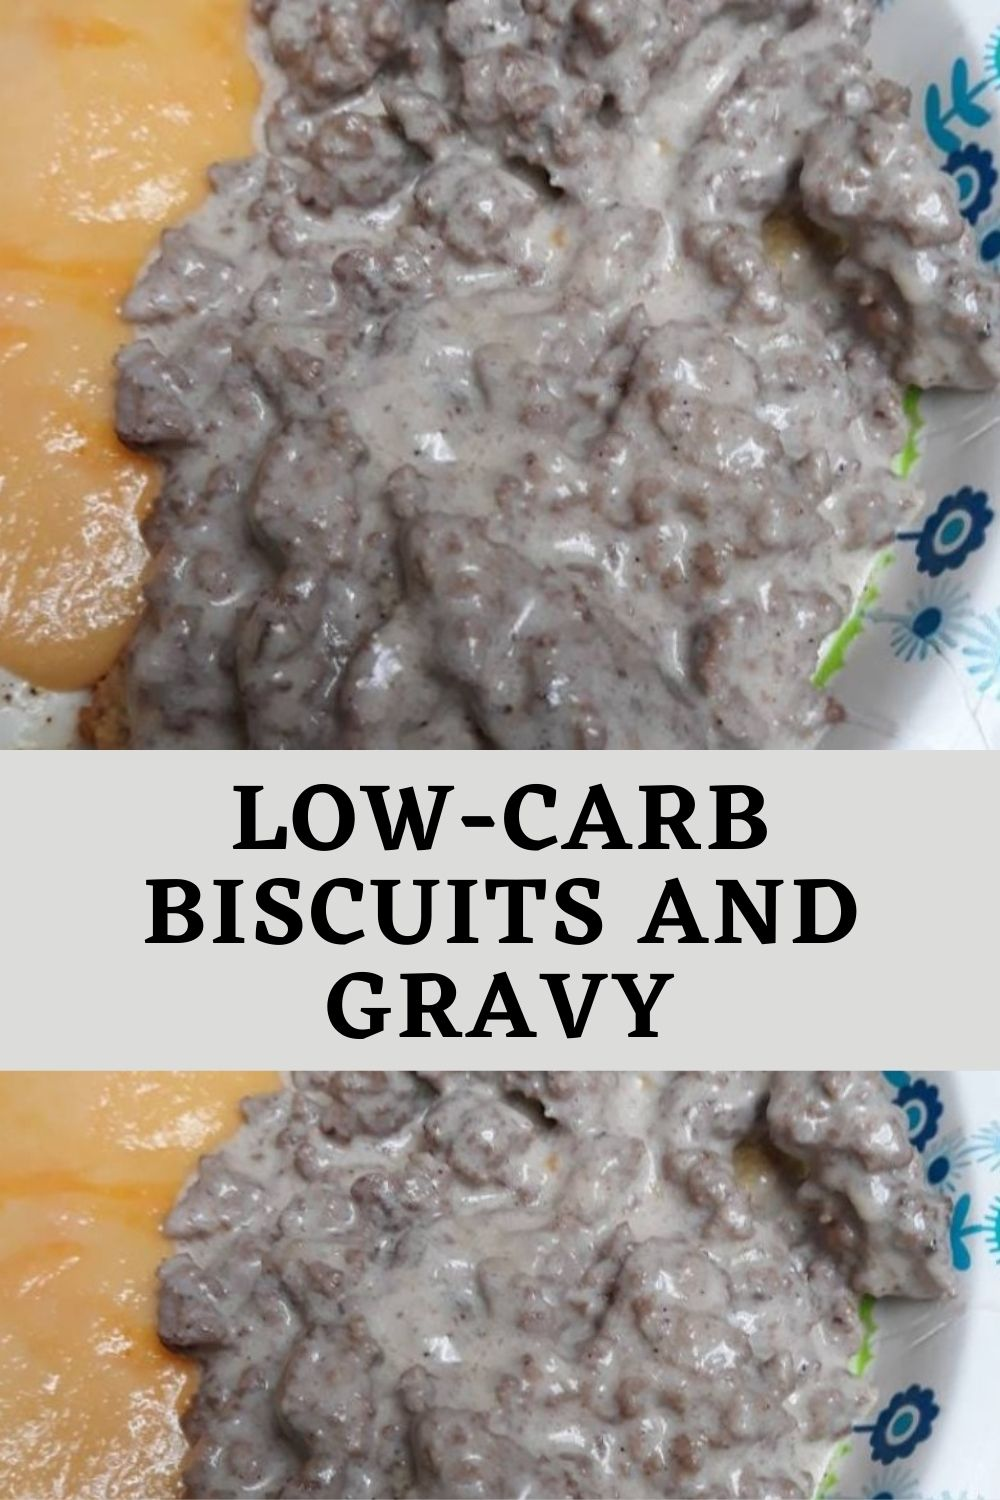 Low-carb Biscuits and Gravy (1)